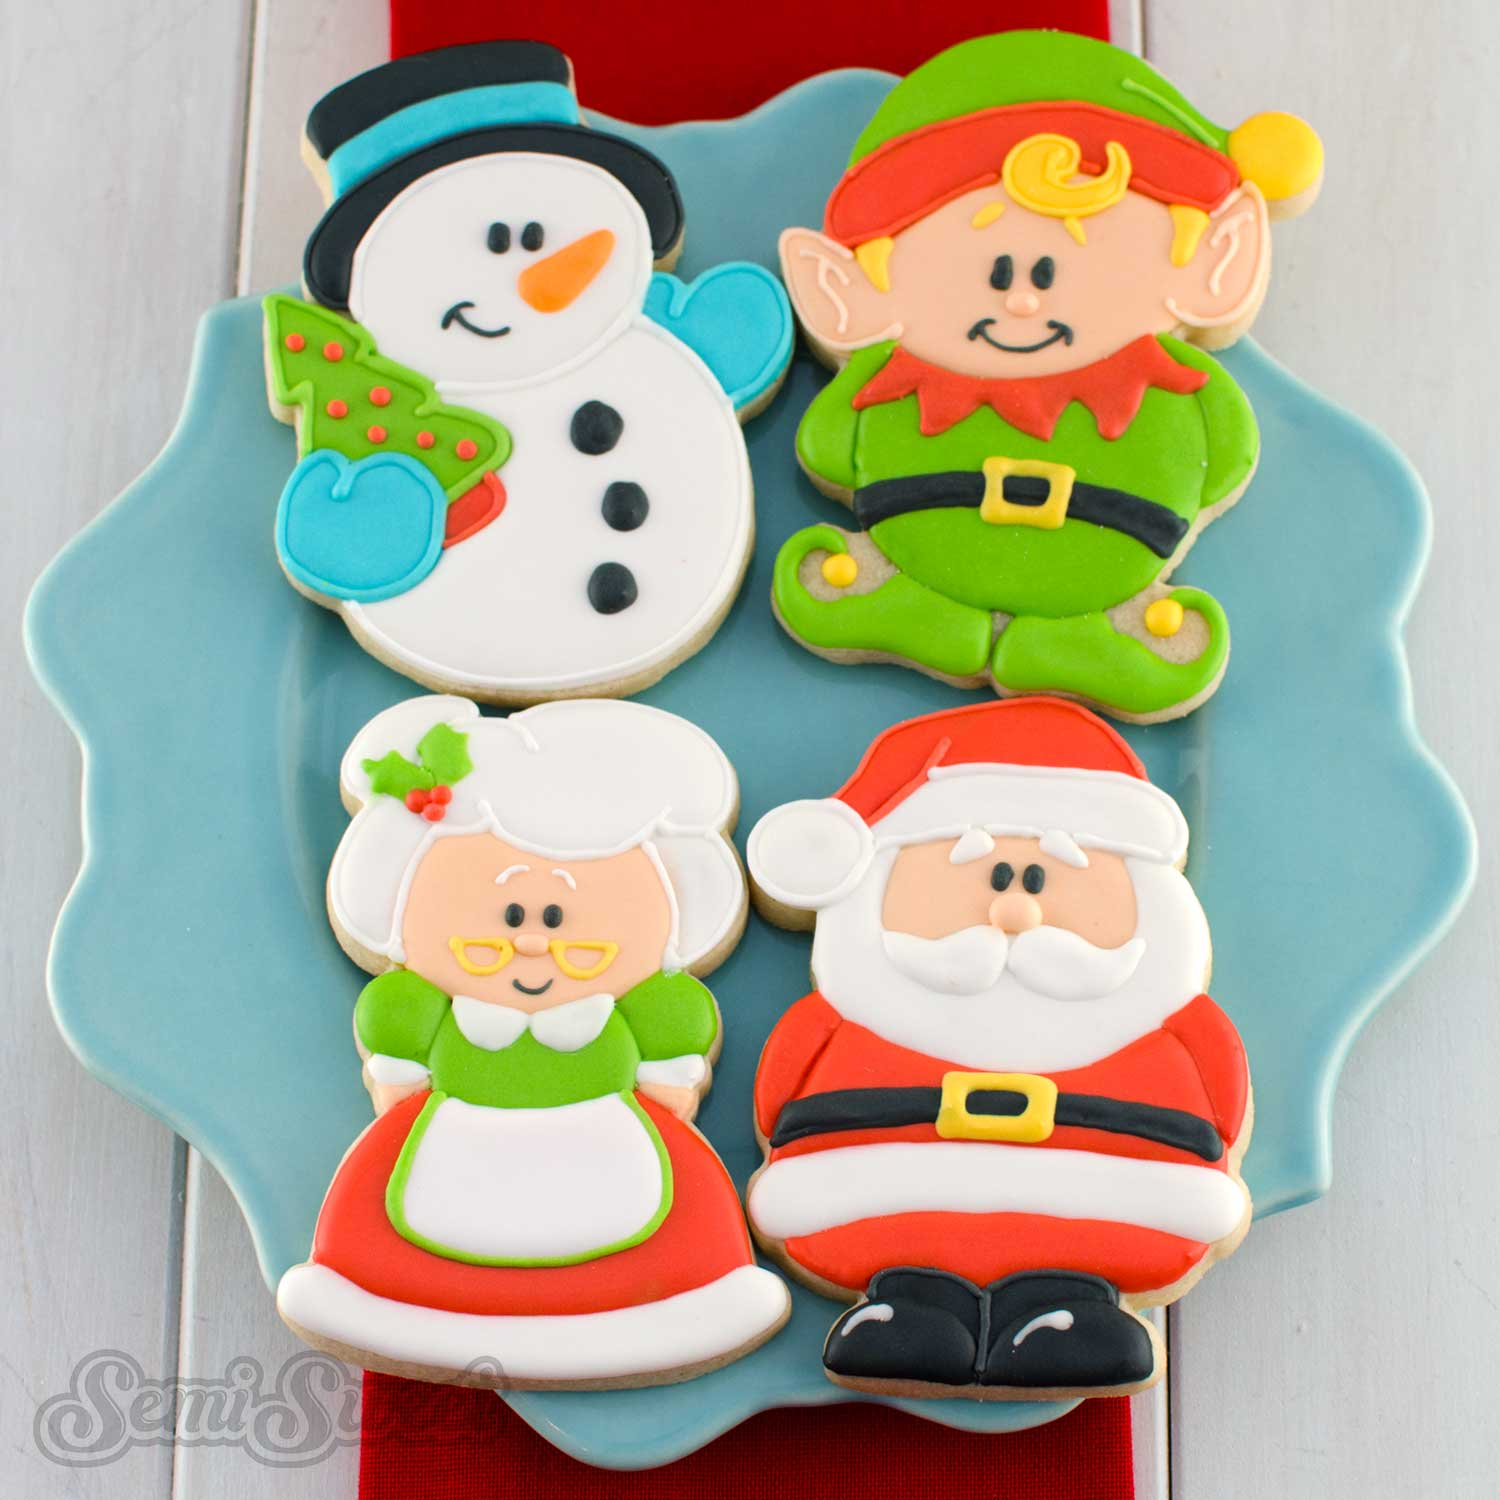 New Christmas Cookie Cutters and Designs